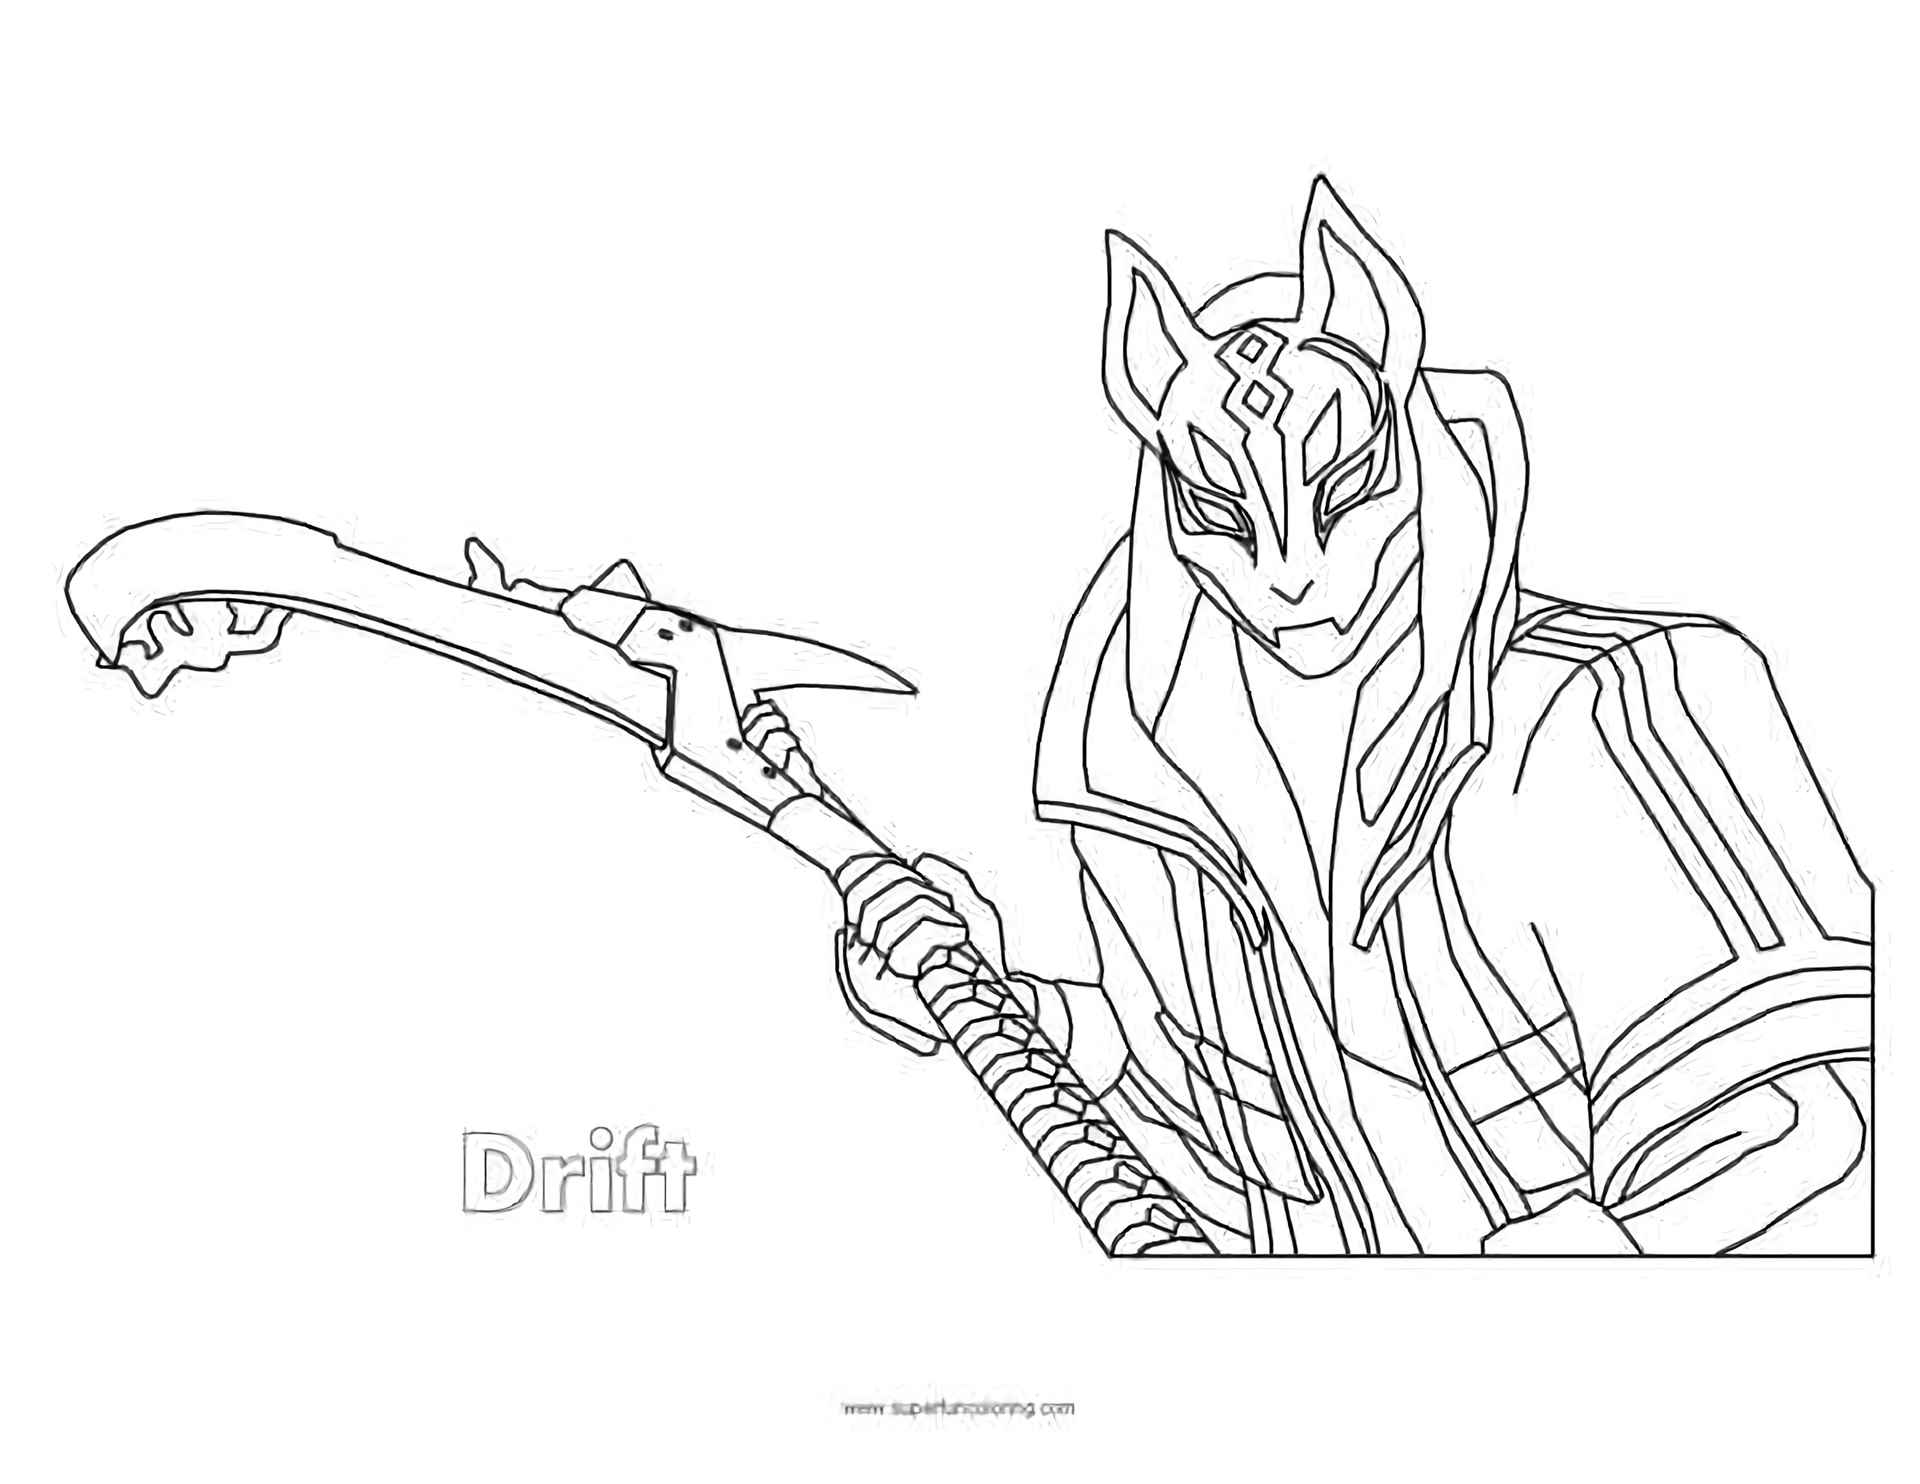 Coloring Page The Drift With Staff Skin From The Game Fortnite